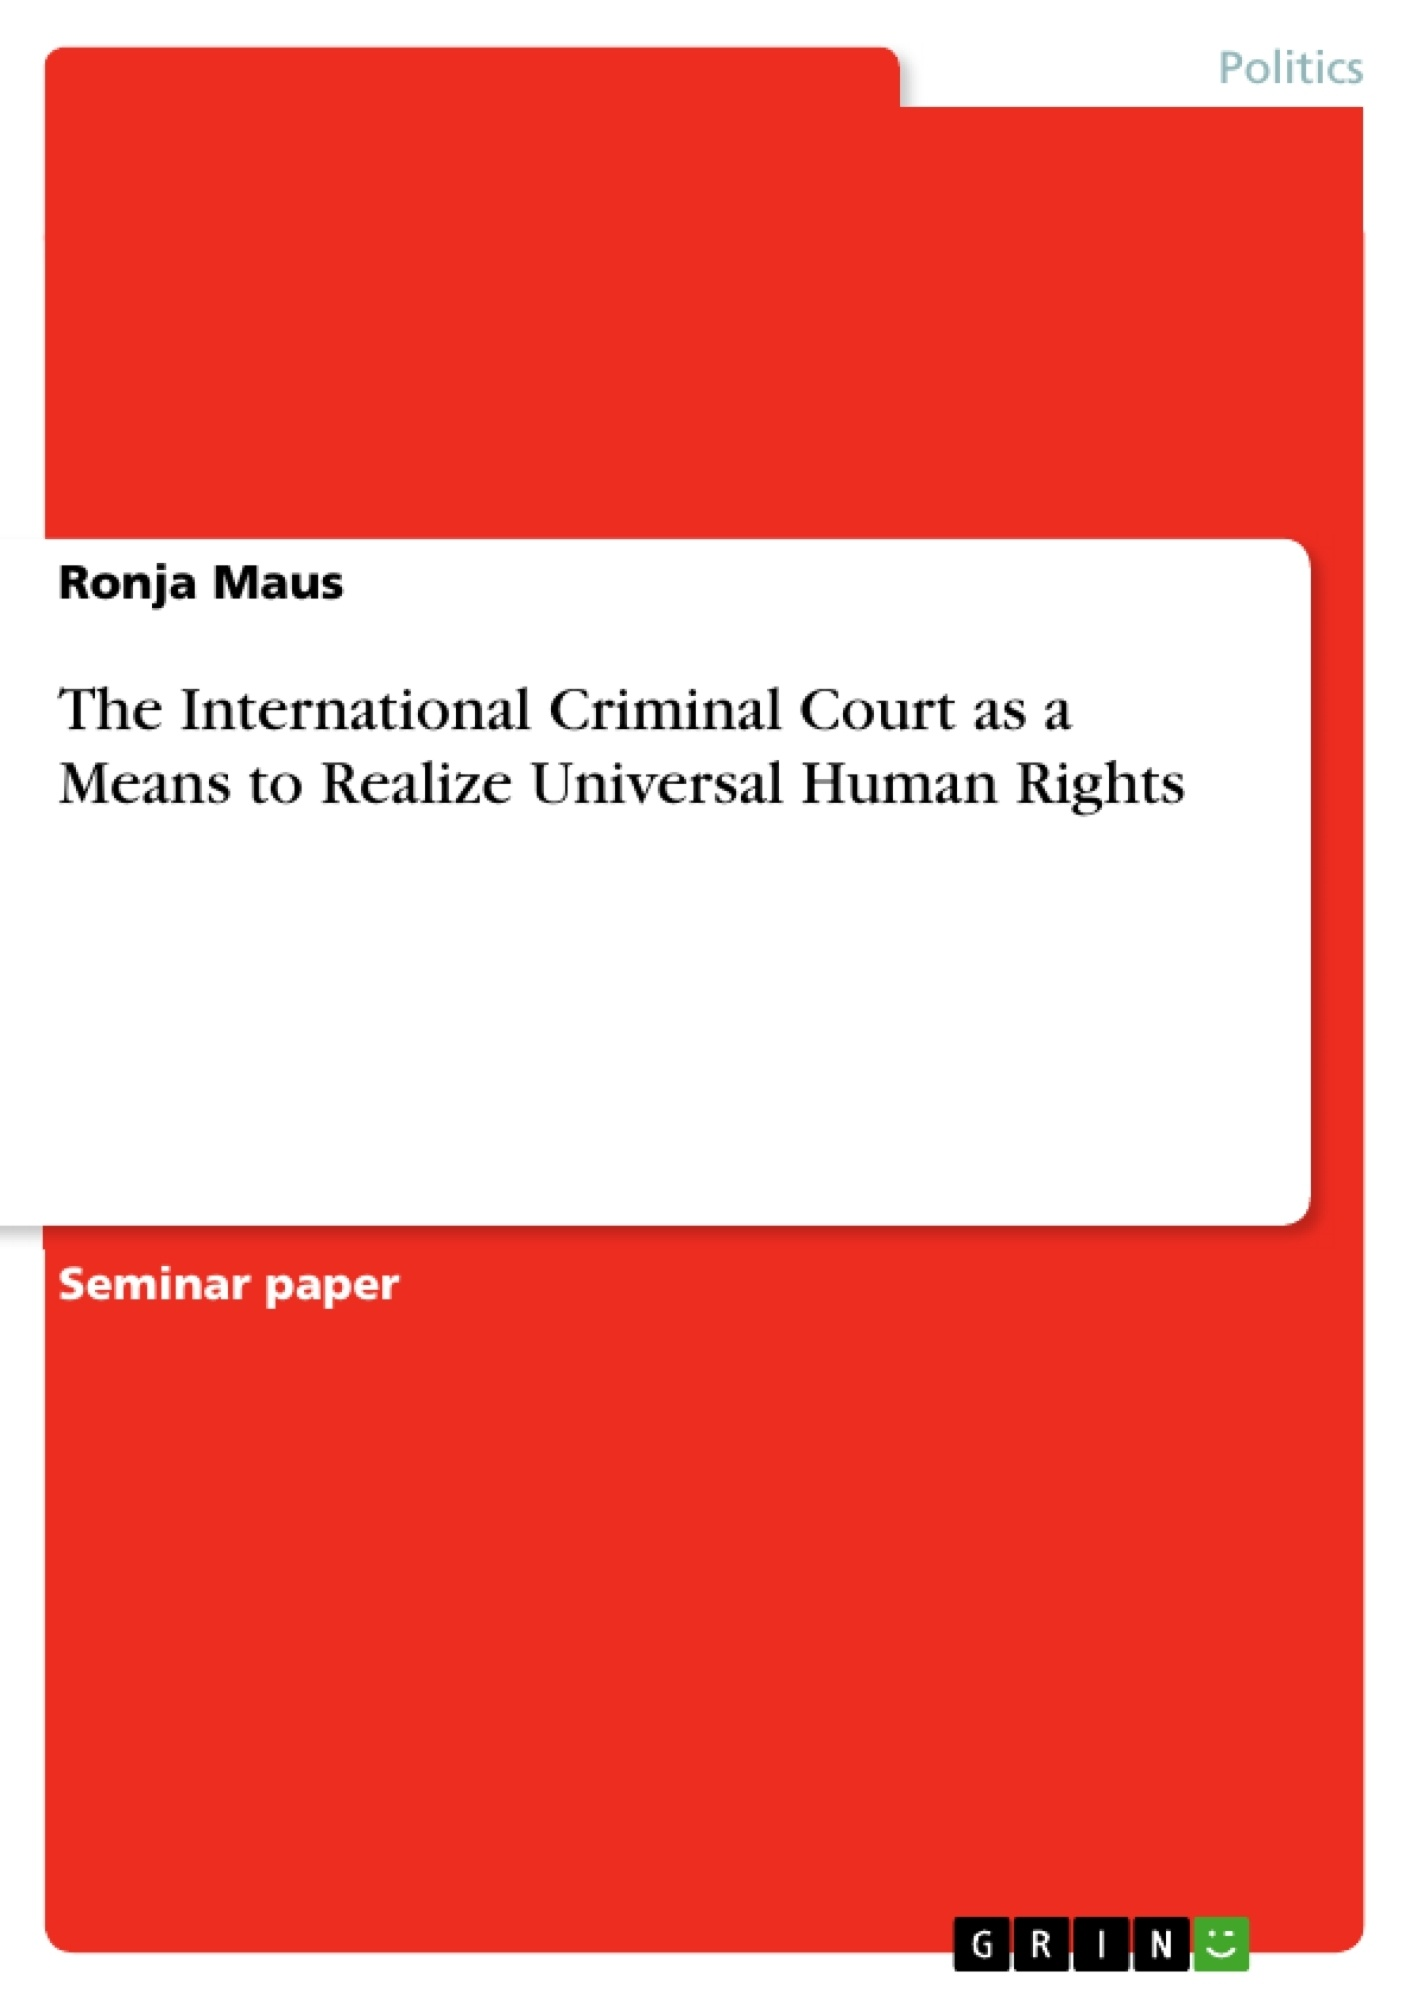 Title: The International Criminal Court as a Means to Realize Universal Human Rights